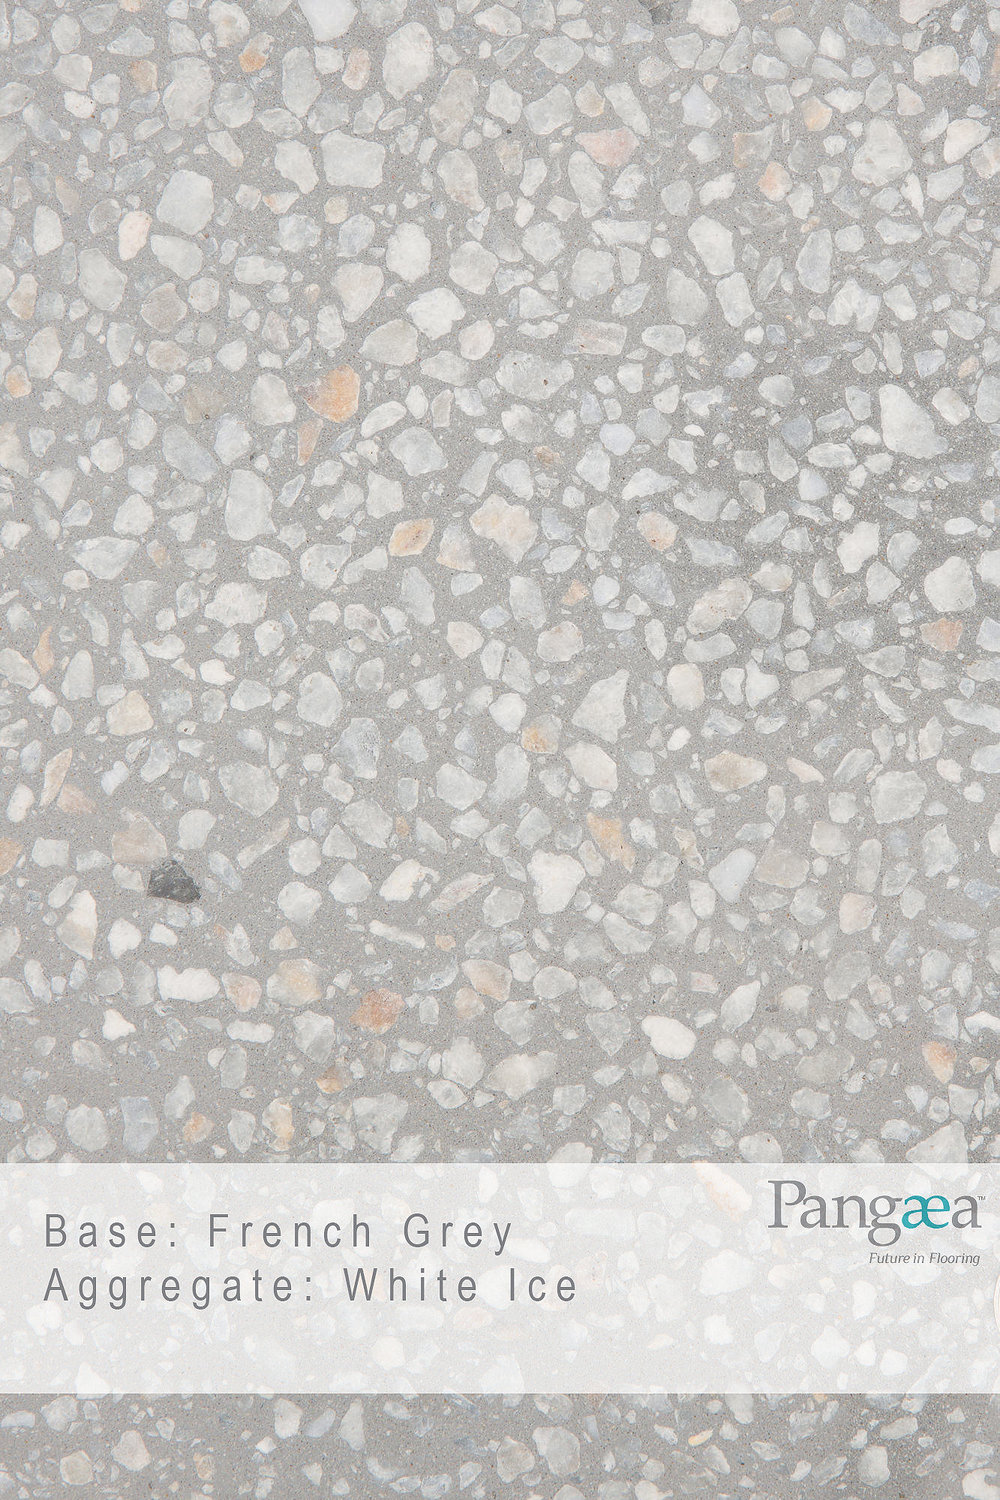 Base - French Grey. Aggregate - White Ice